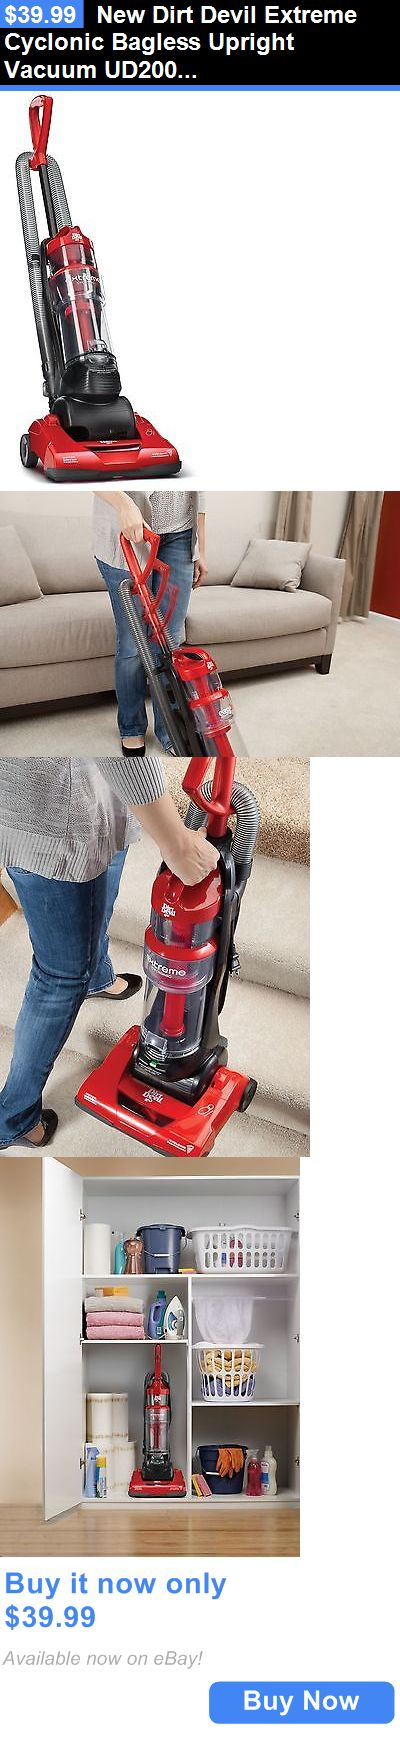 household items: New Dirt Devil Extreme Cyclonic Bagless Upright Vacuum Ud20010 BUY IT NOW ONLY: $39.99